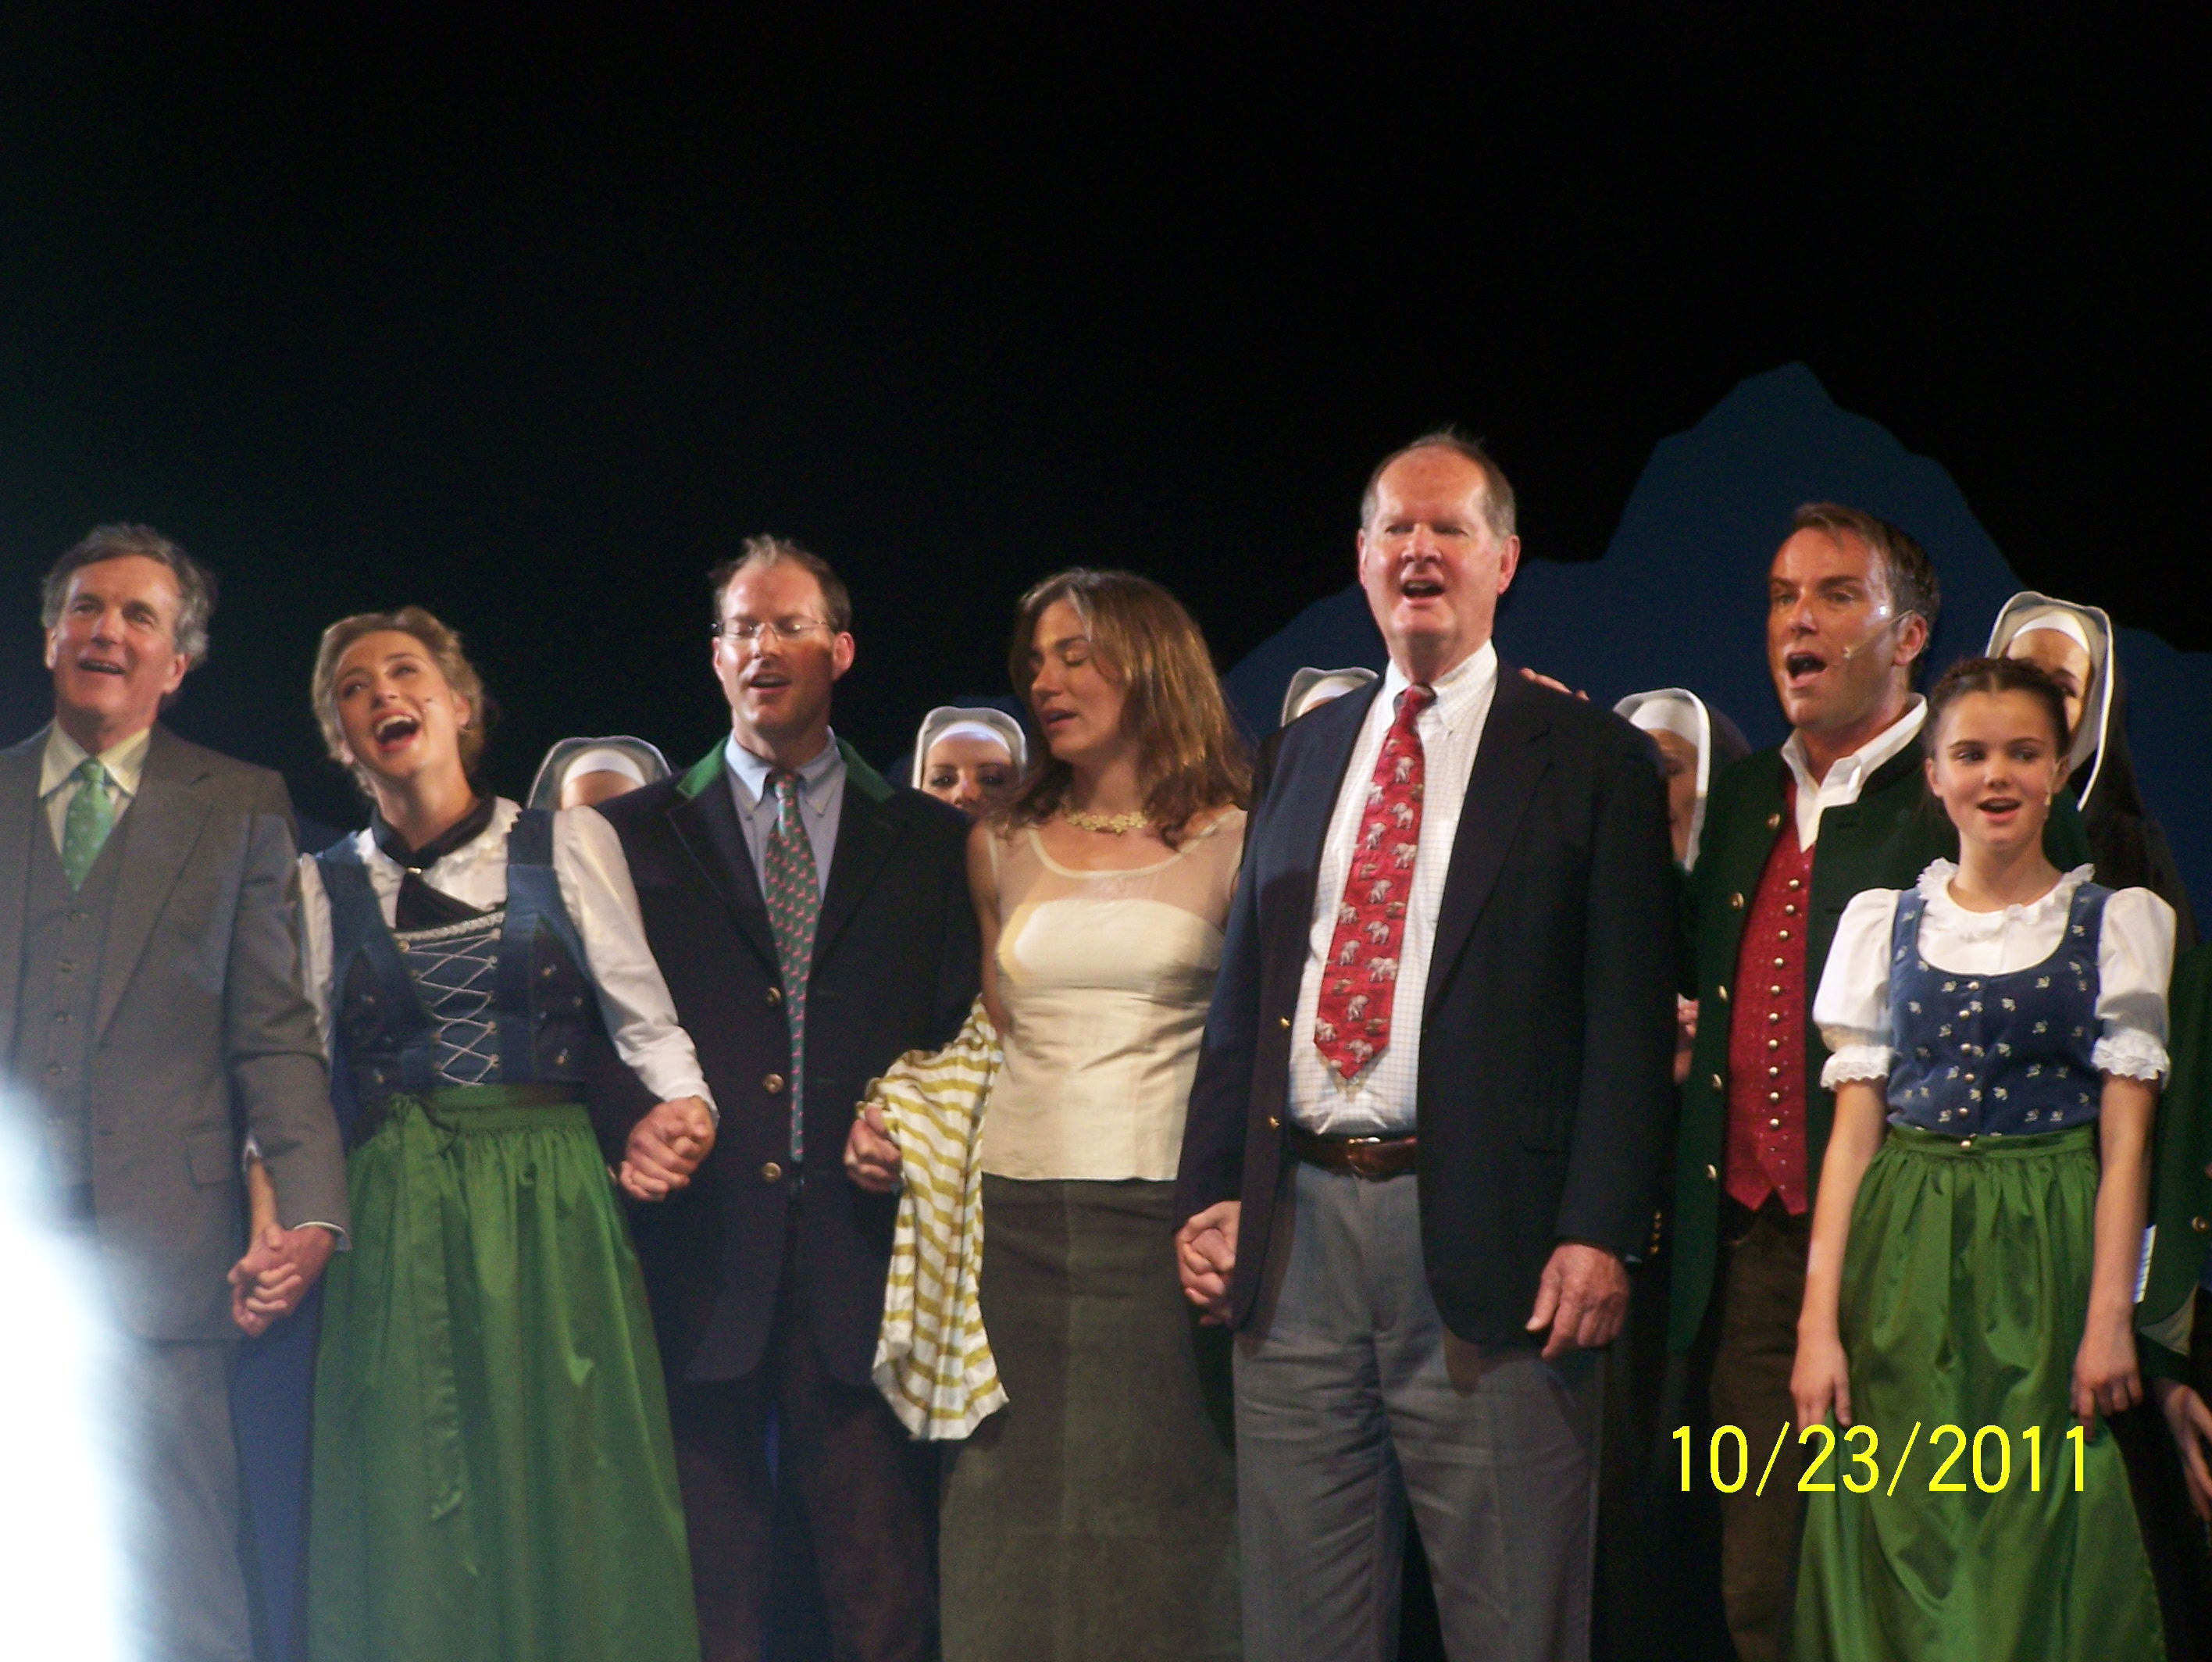 The cast of THE SOUND OF MUSIC in Salzburg